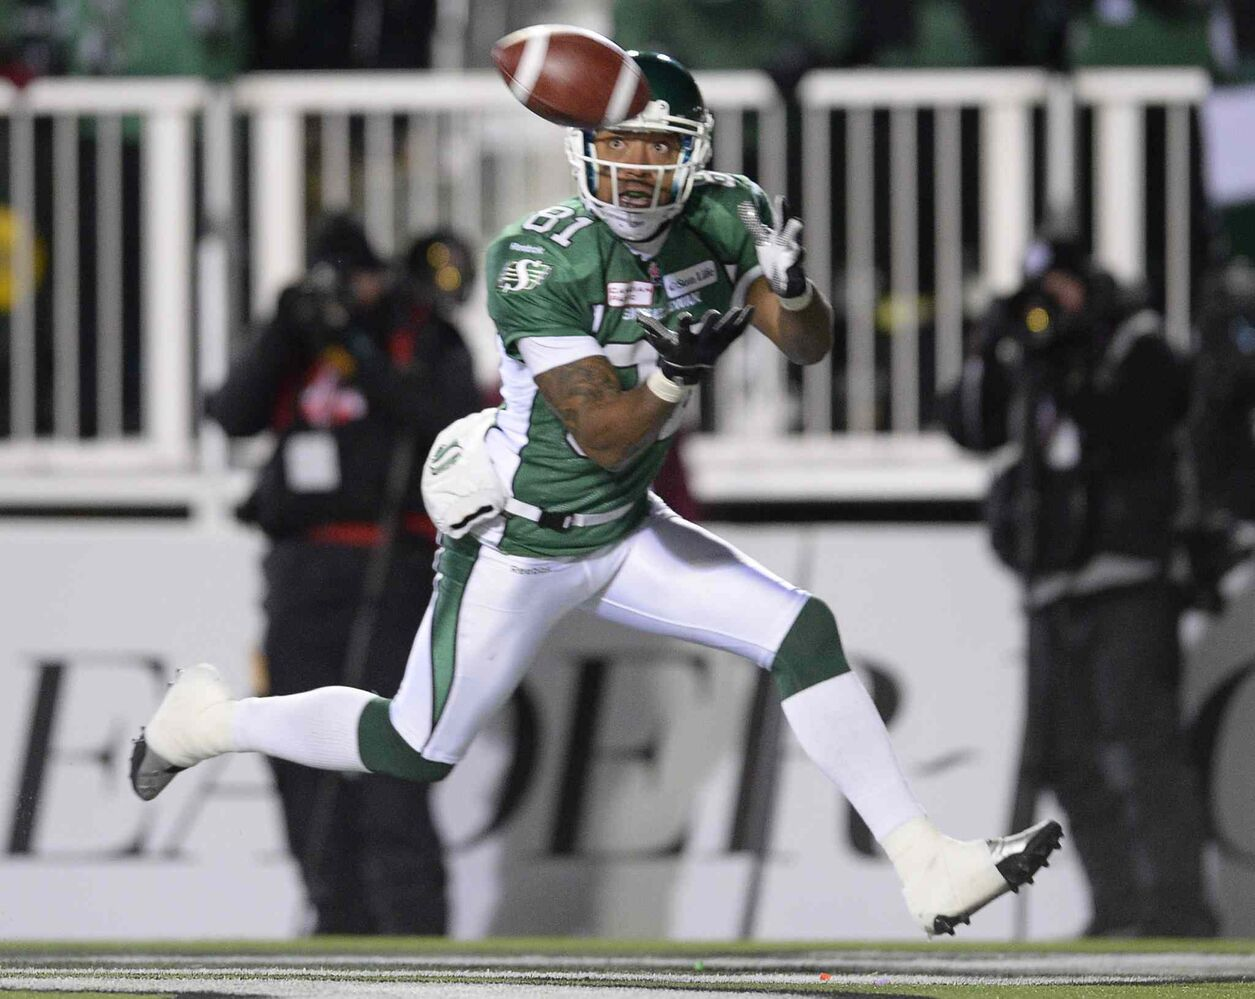 Saskatchewan Roughriders slotback Geroy Simon catches the ball in the end zone for a touchdown as they face the Hamilton Tiger-Cats during first quarter of the Grey Cup Sunday November 24, 2013 in Regina. THE CANADIAN PRESS/Frank Gunn (Frank Gunn / The Canadian Press)